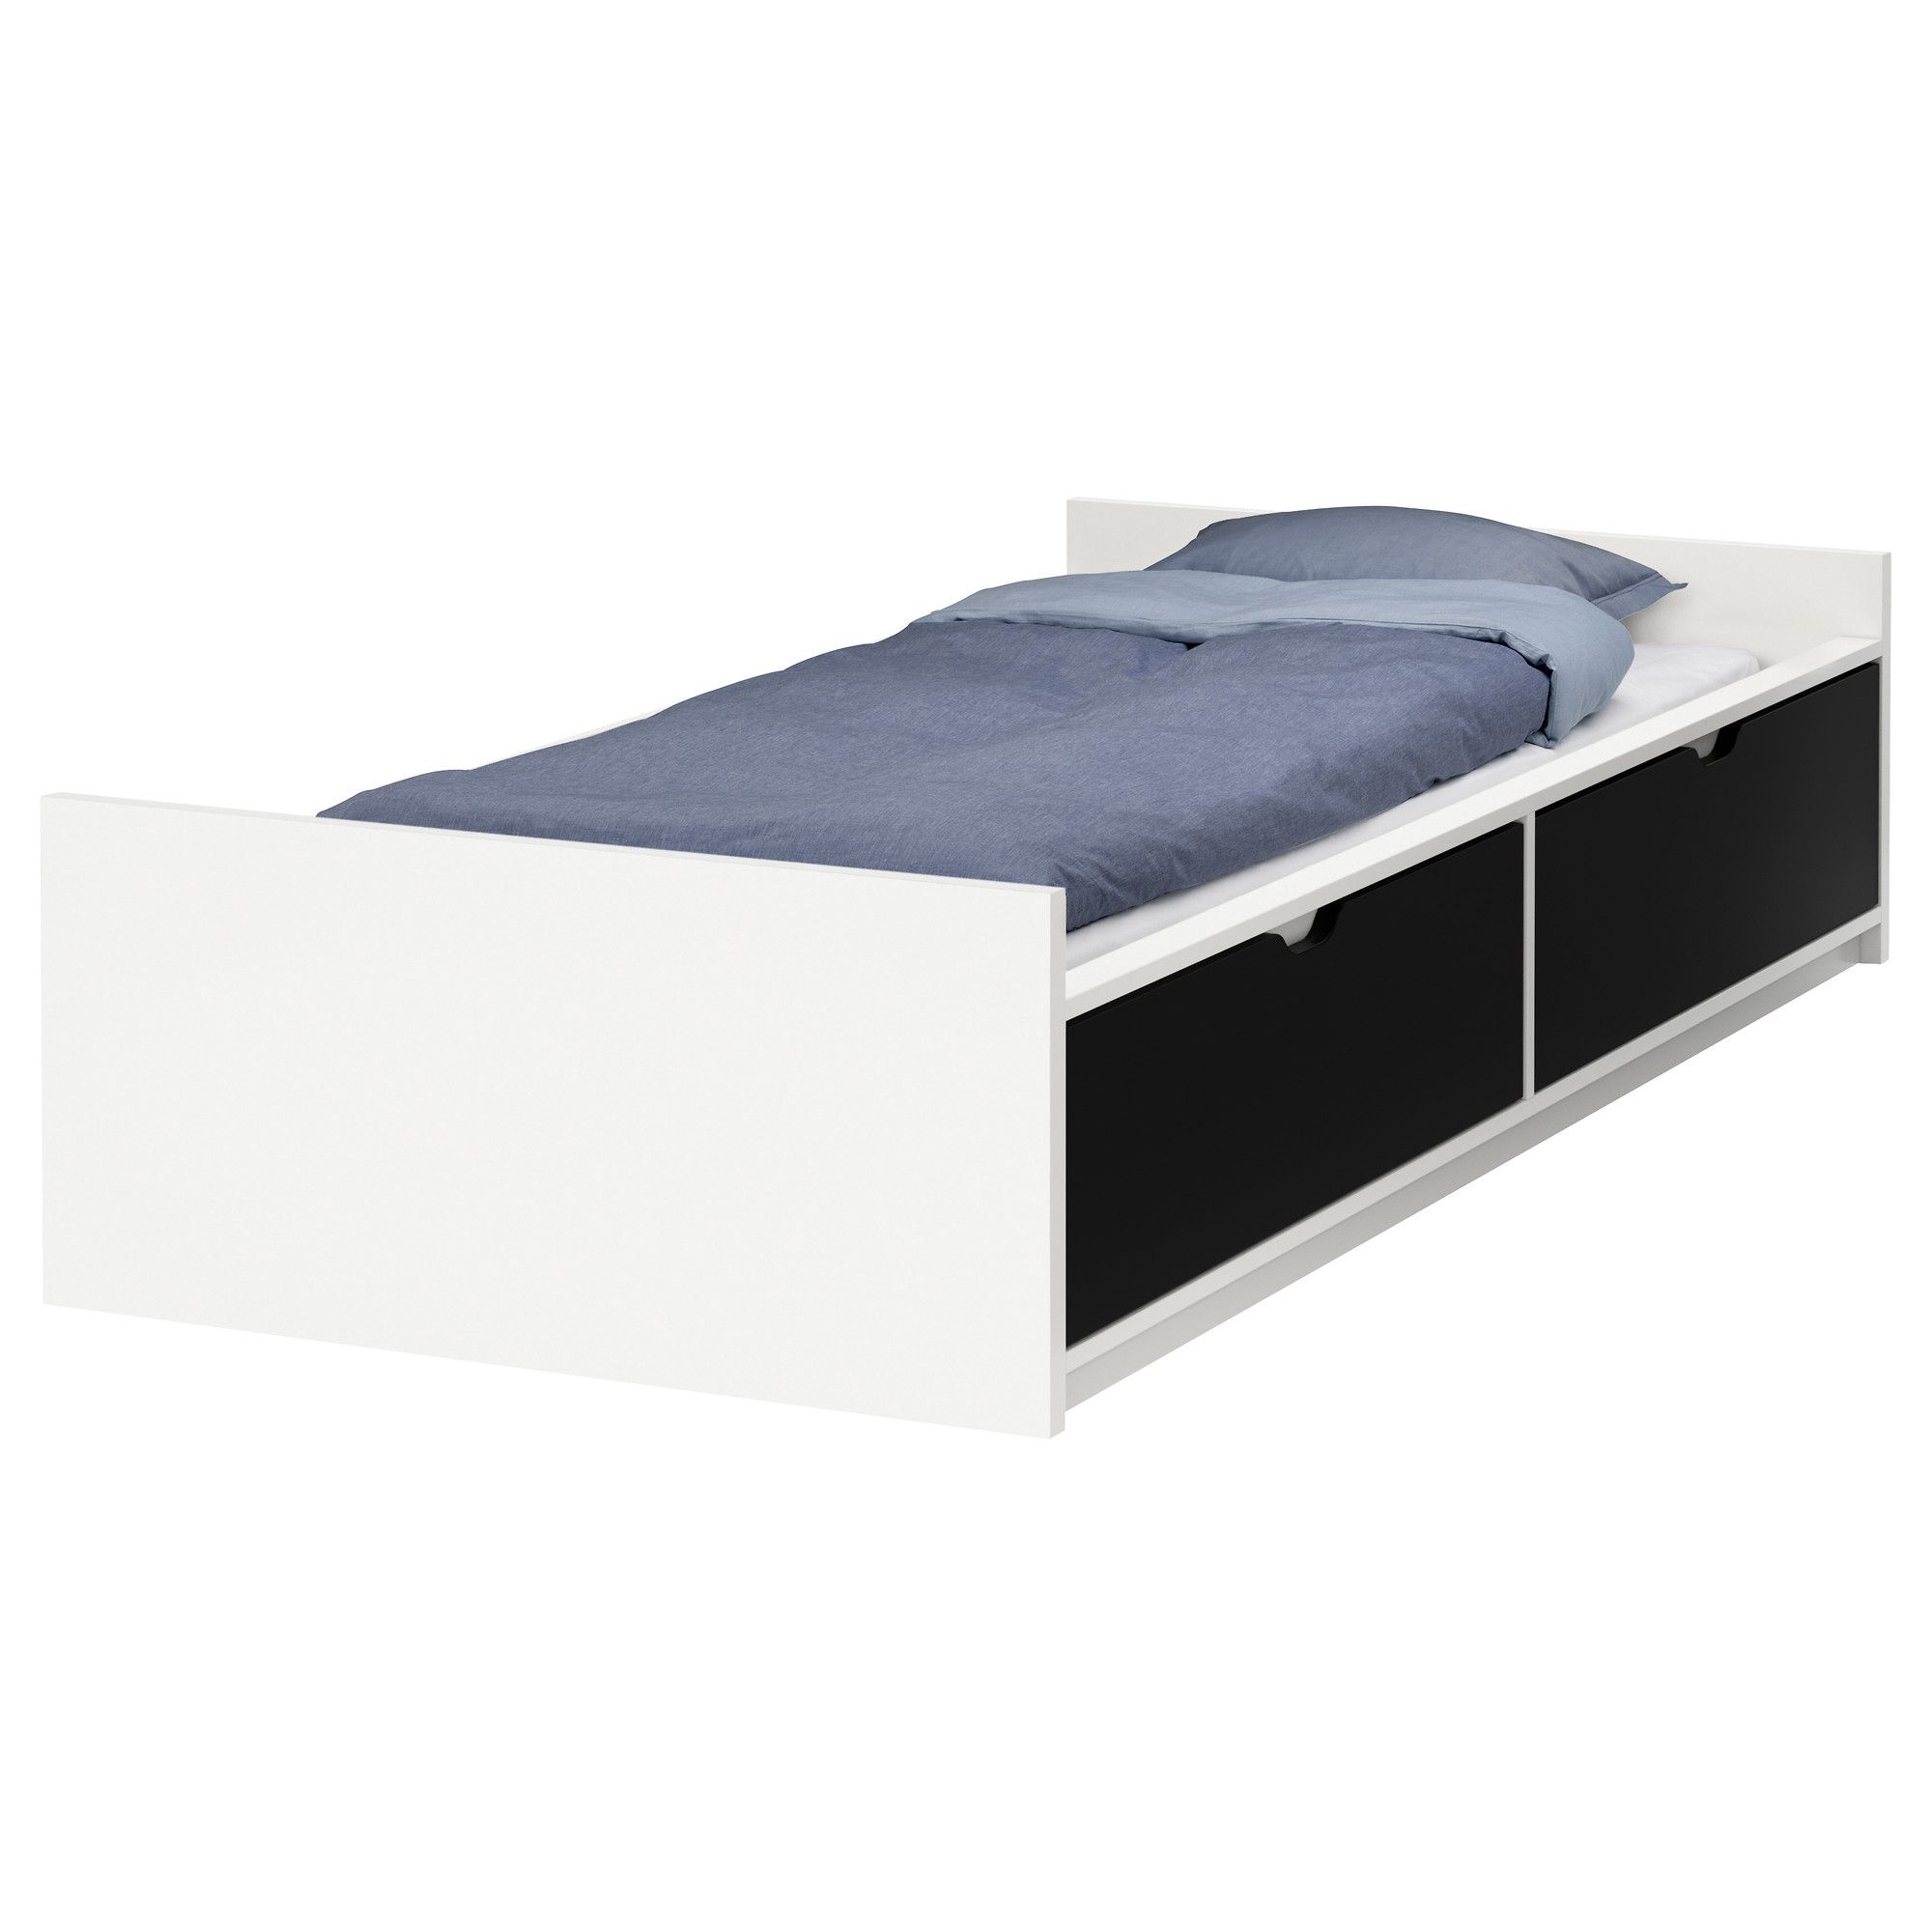 Metal bed frames with storage - Flaxa Bed Frame W Storage Slatted Bedbase Ikea What Color Is Drawer